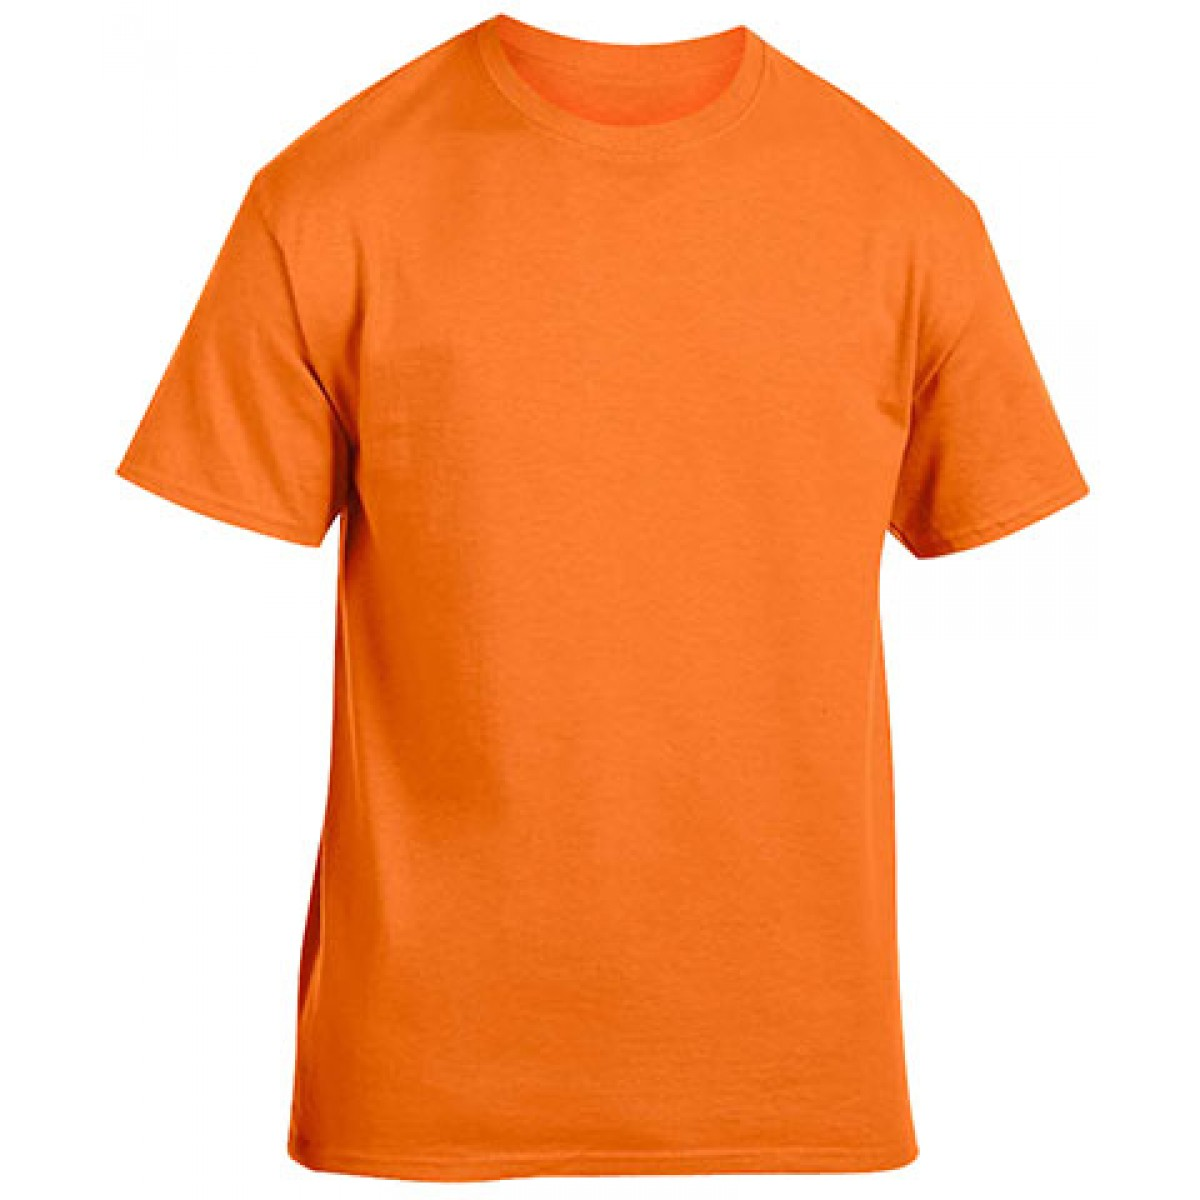 Heavy Cotton Activewear T-Shirt-Safety Orange-L